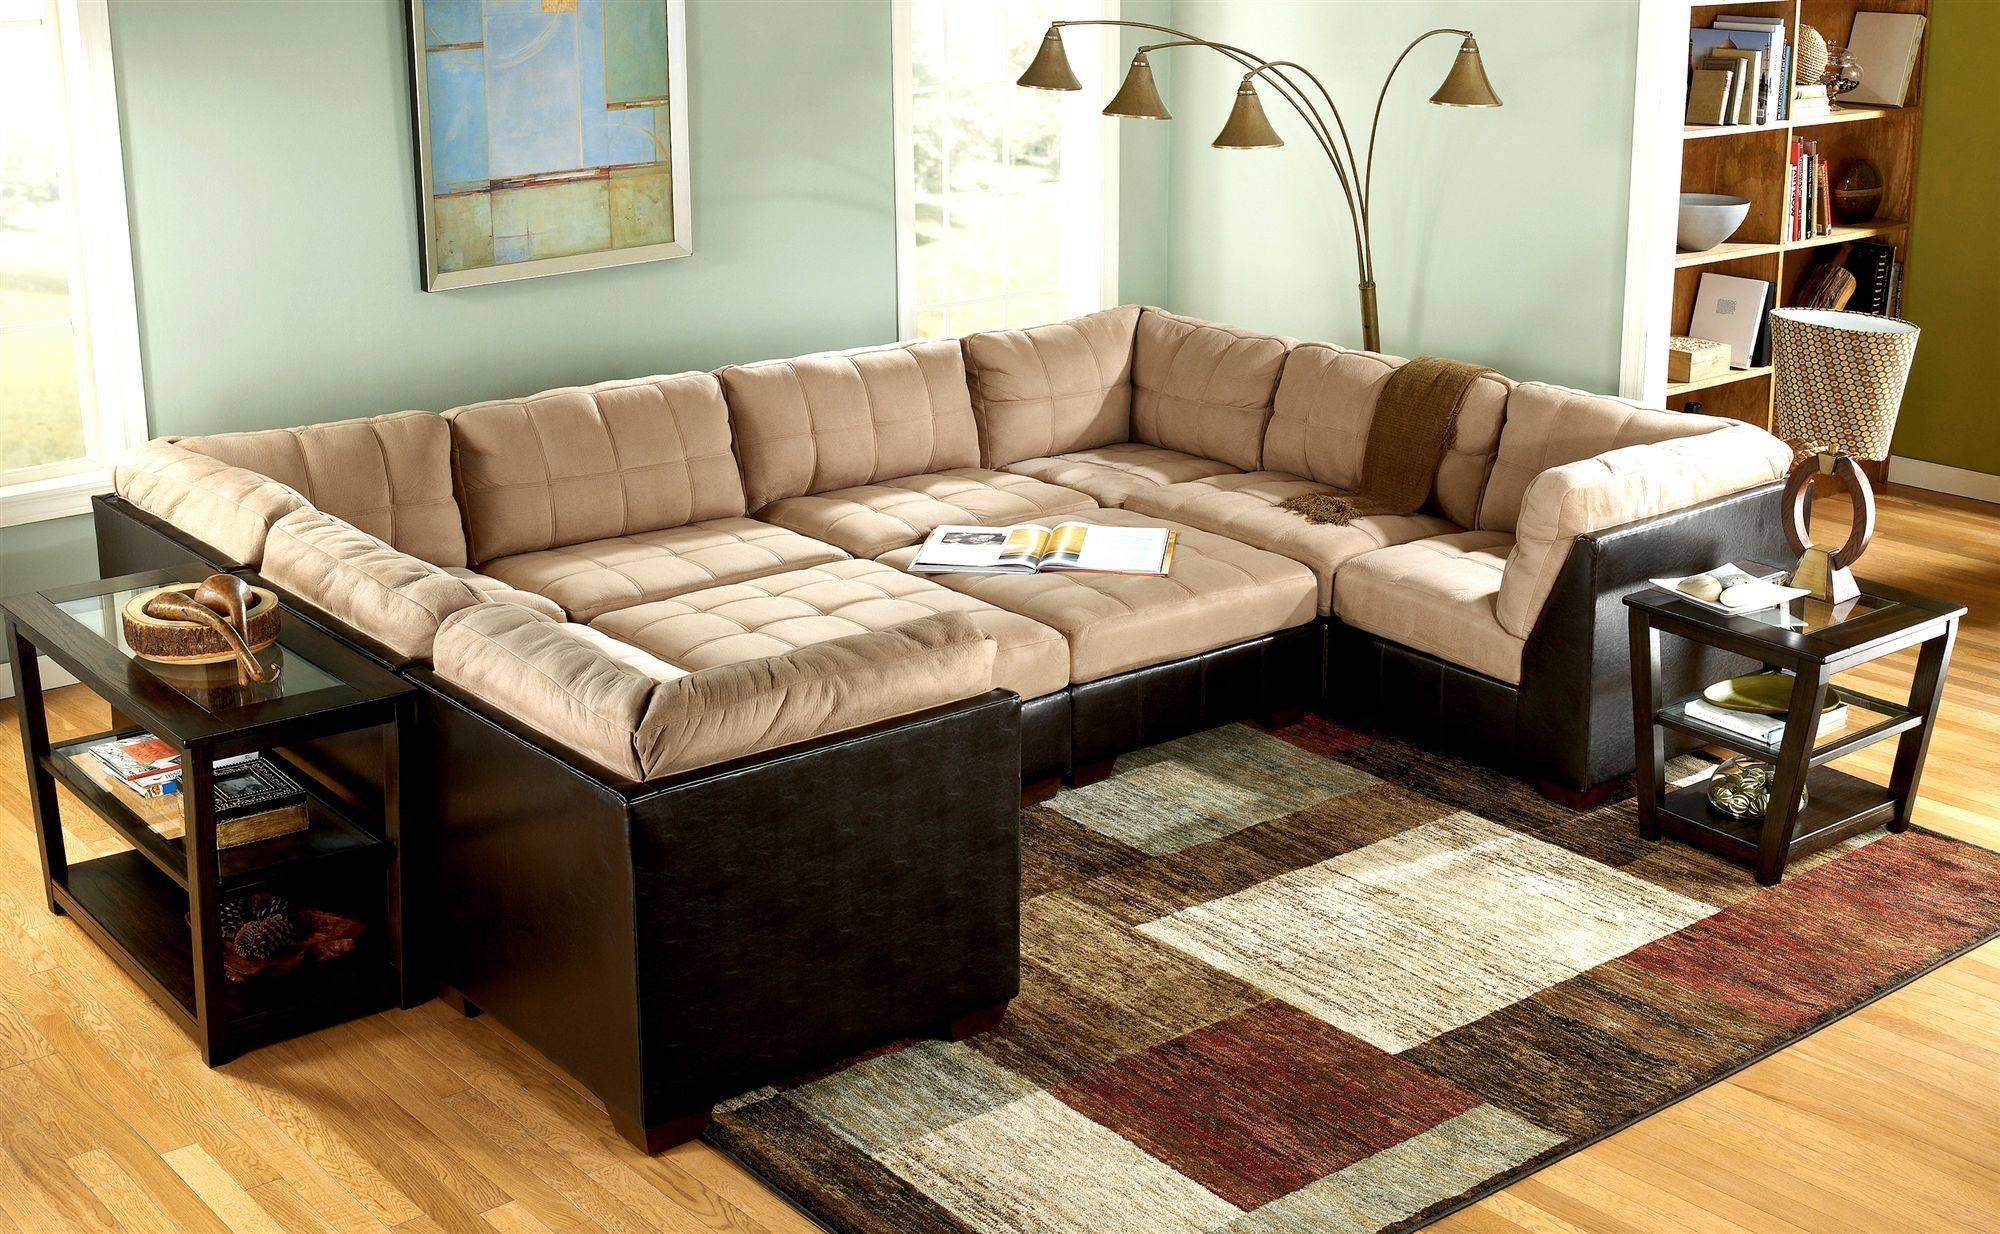 Furniture: Great Pit Sectional For Living Room Furniture Ideas with regard to Pit Sofas (Image 8 of 30)